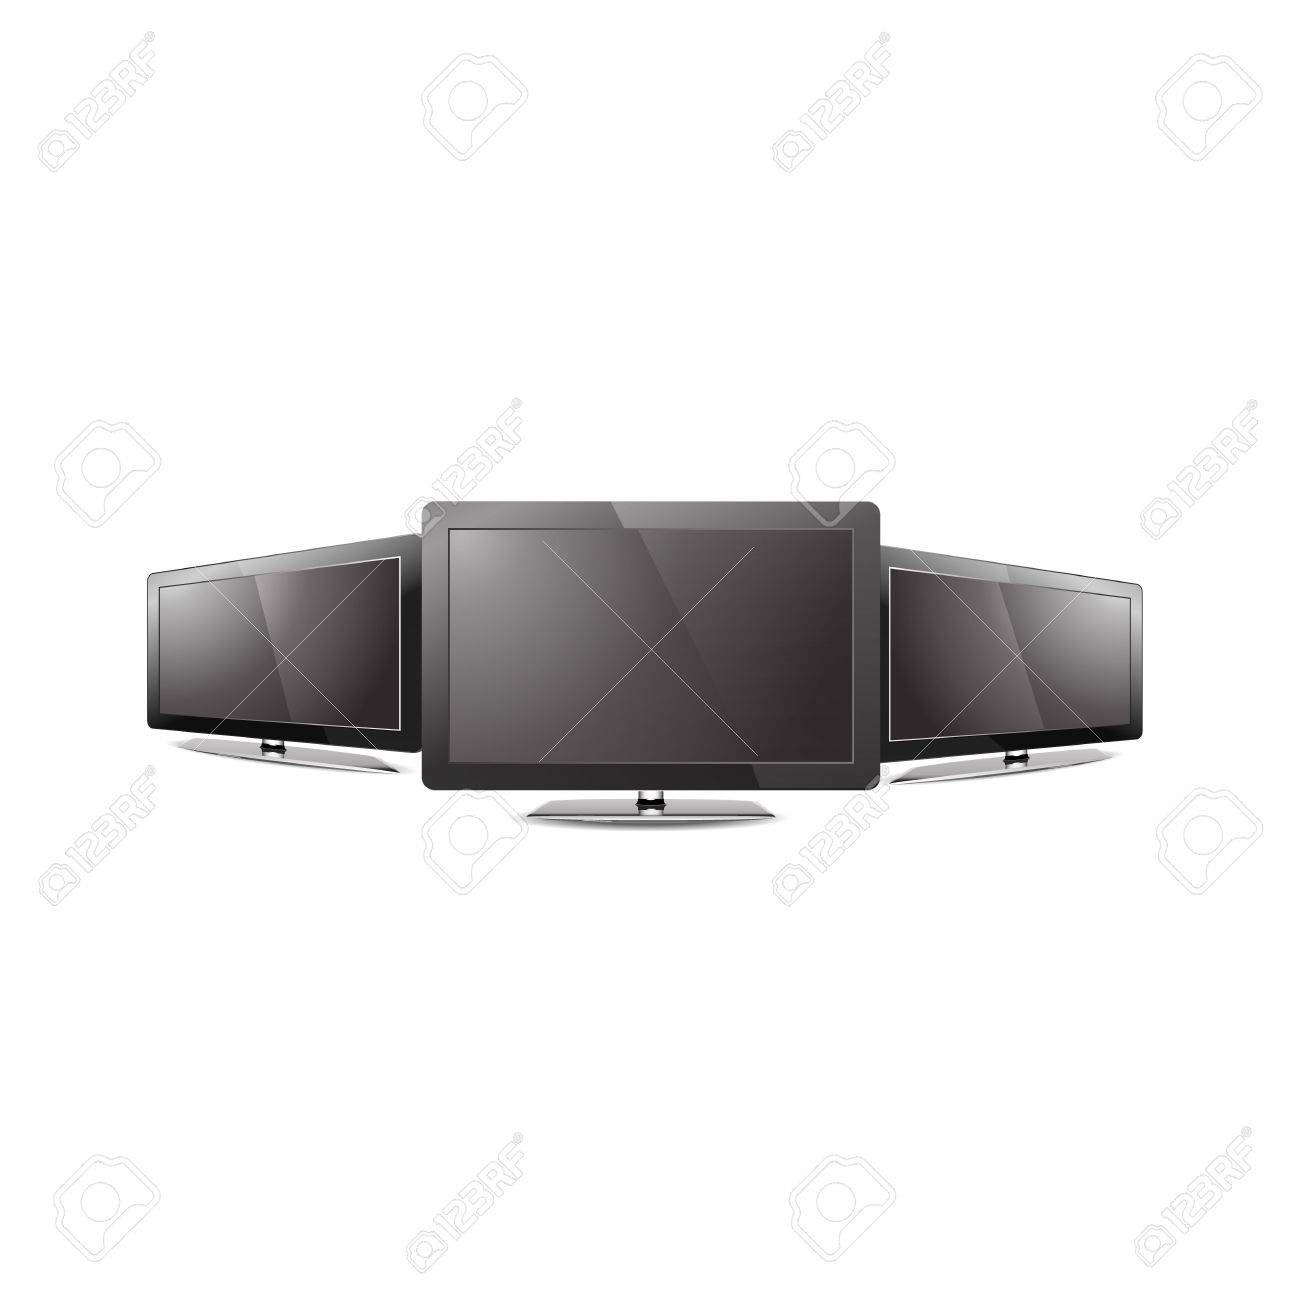 Three Led tv monitor black screen showcase graphic Stock Vector - 20989273